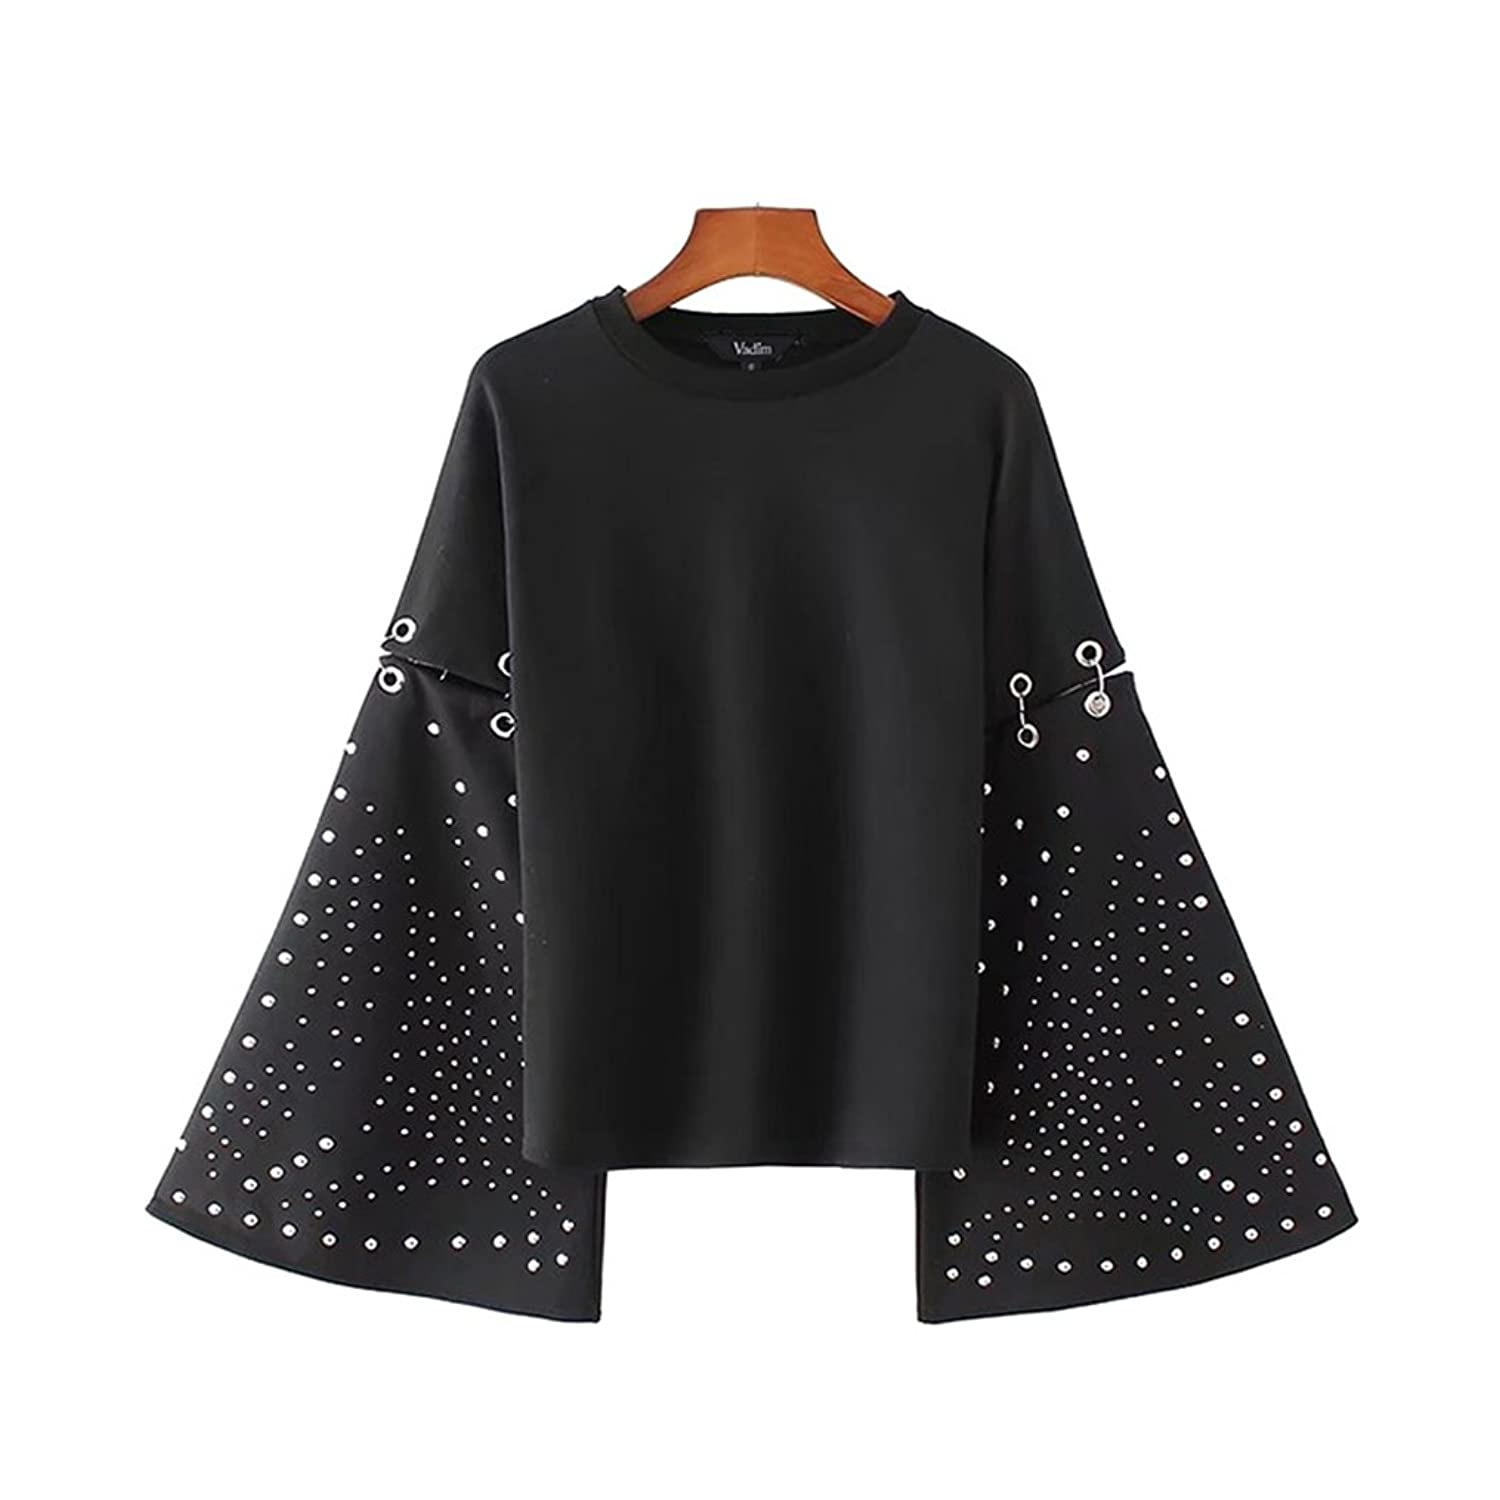 hongweixinxi Vadim women flare sleeve rivet loose sweatshirts studded oversized o neck black pullovers autumn female casual tops LT2203 at Amazon Womens ...